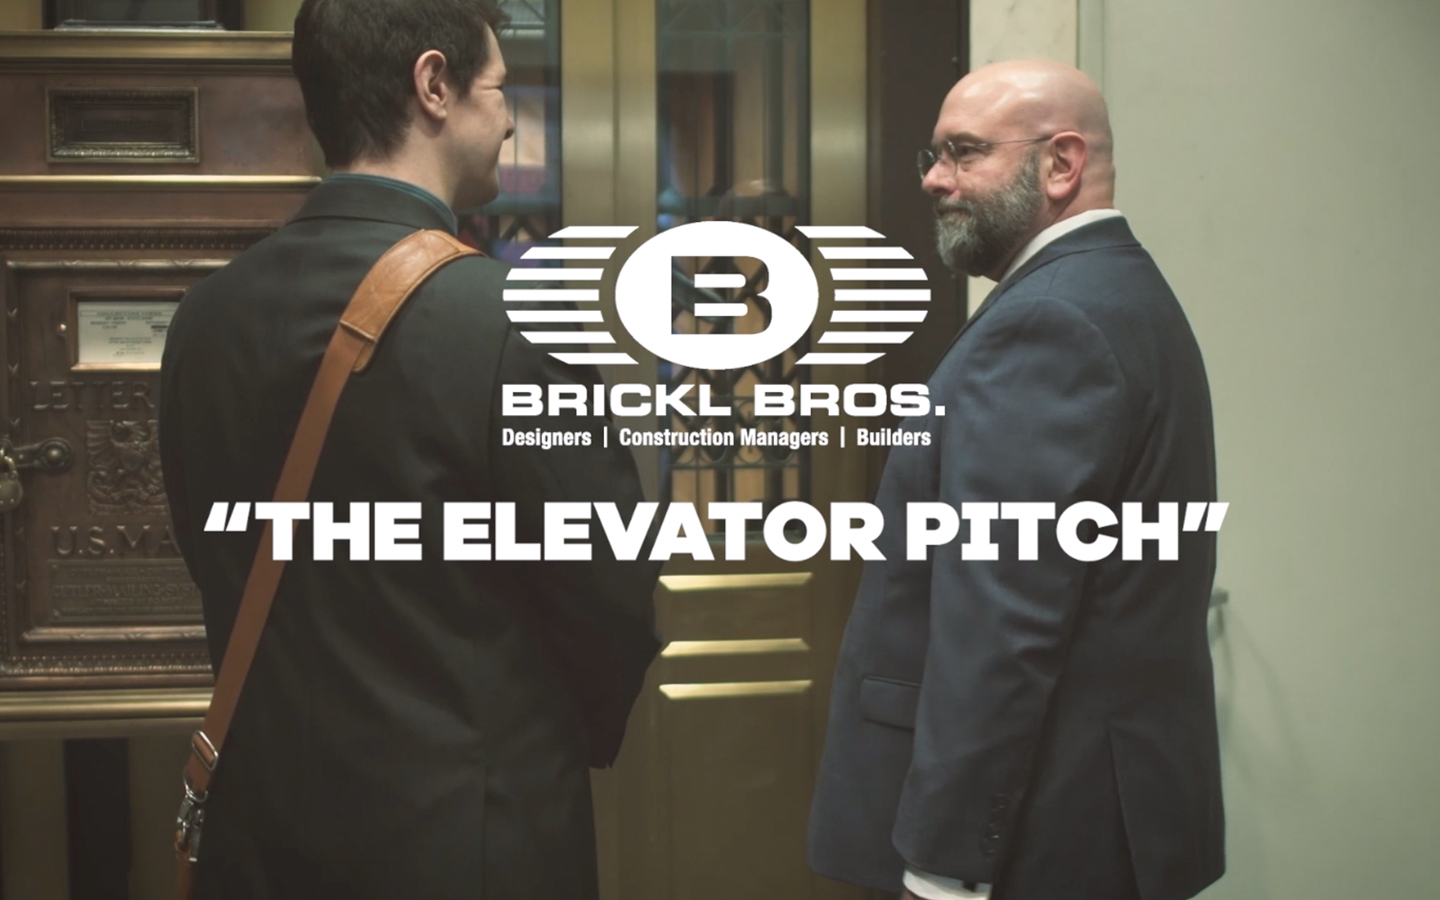 Brickl Bros Elevator Pitch Promotional Video